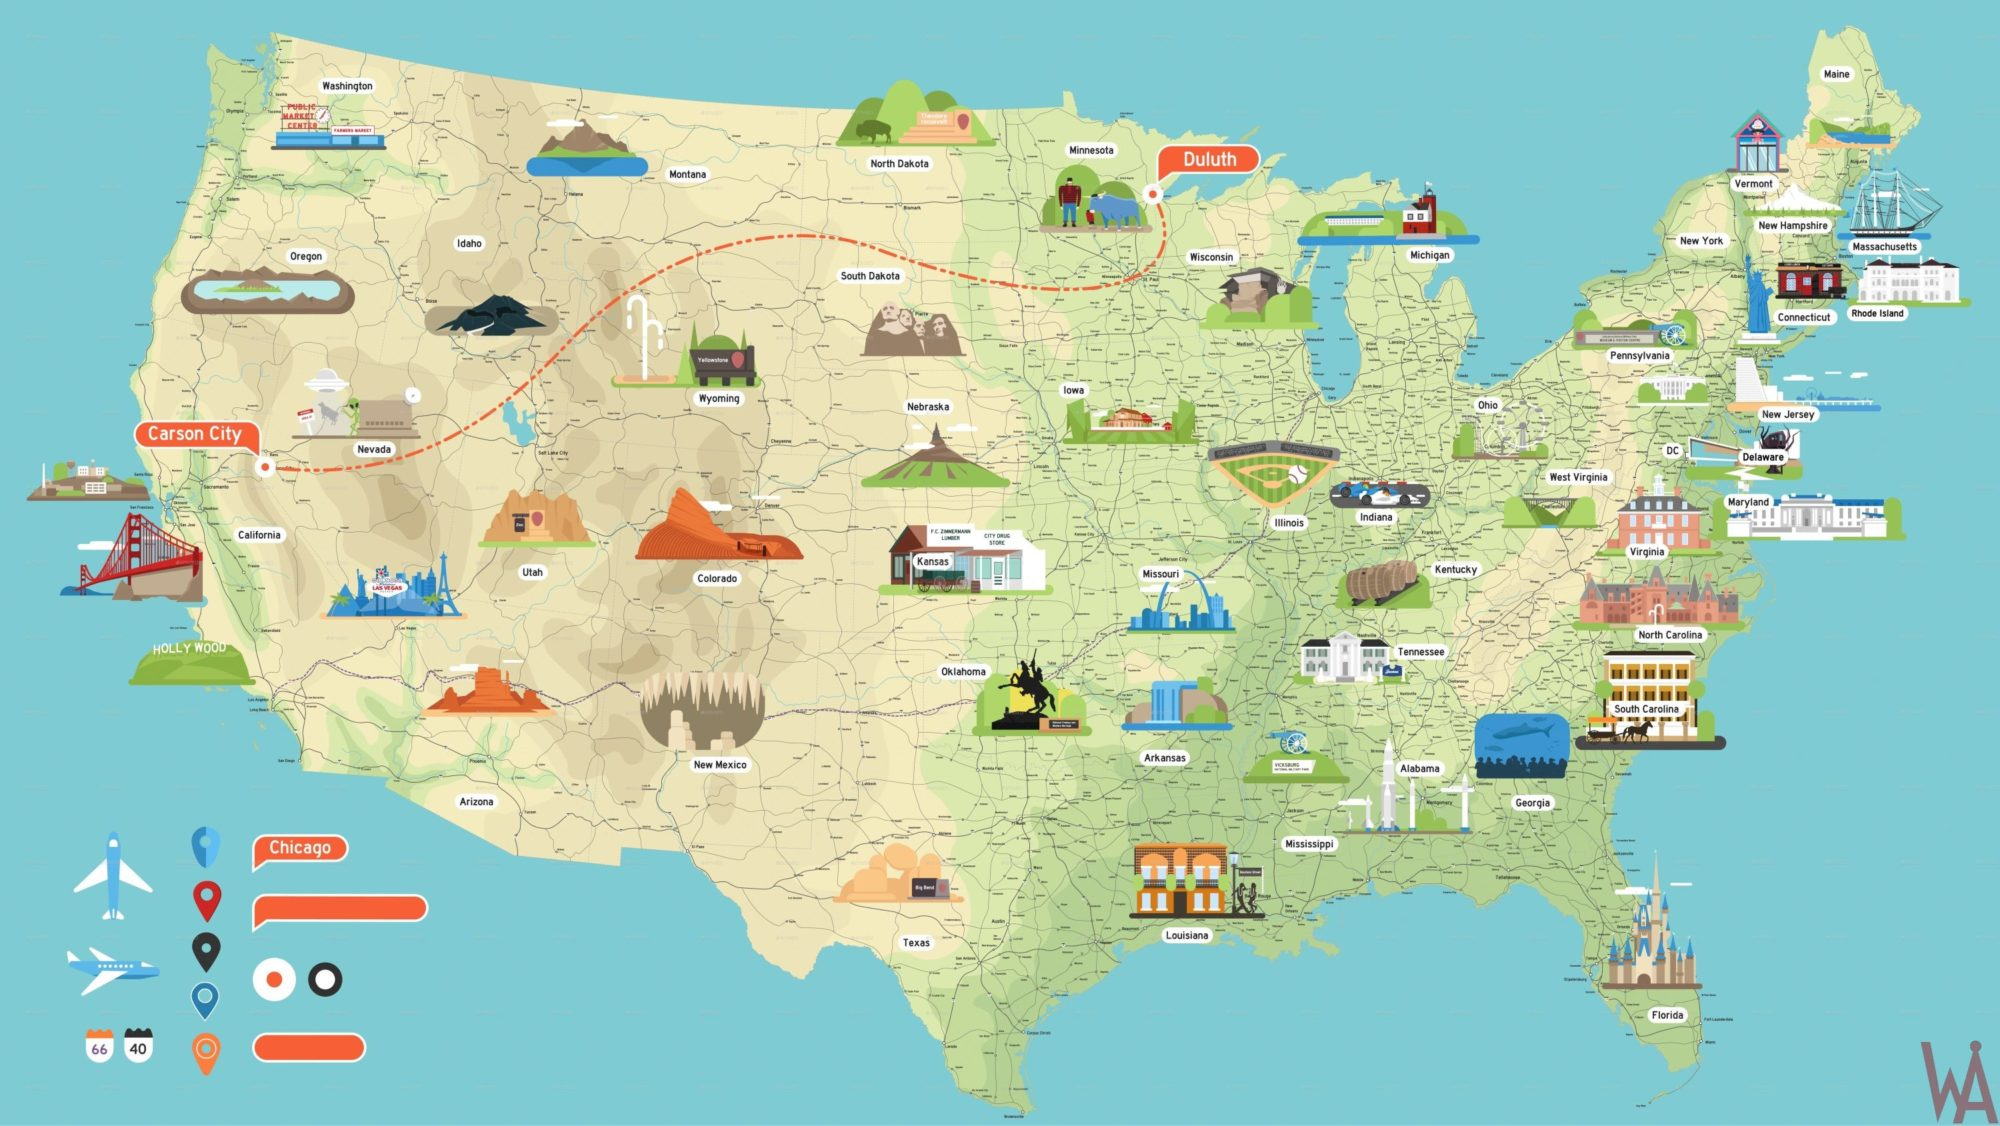 Tourist Attraction Map of the USA